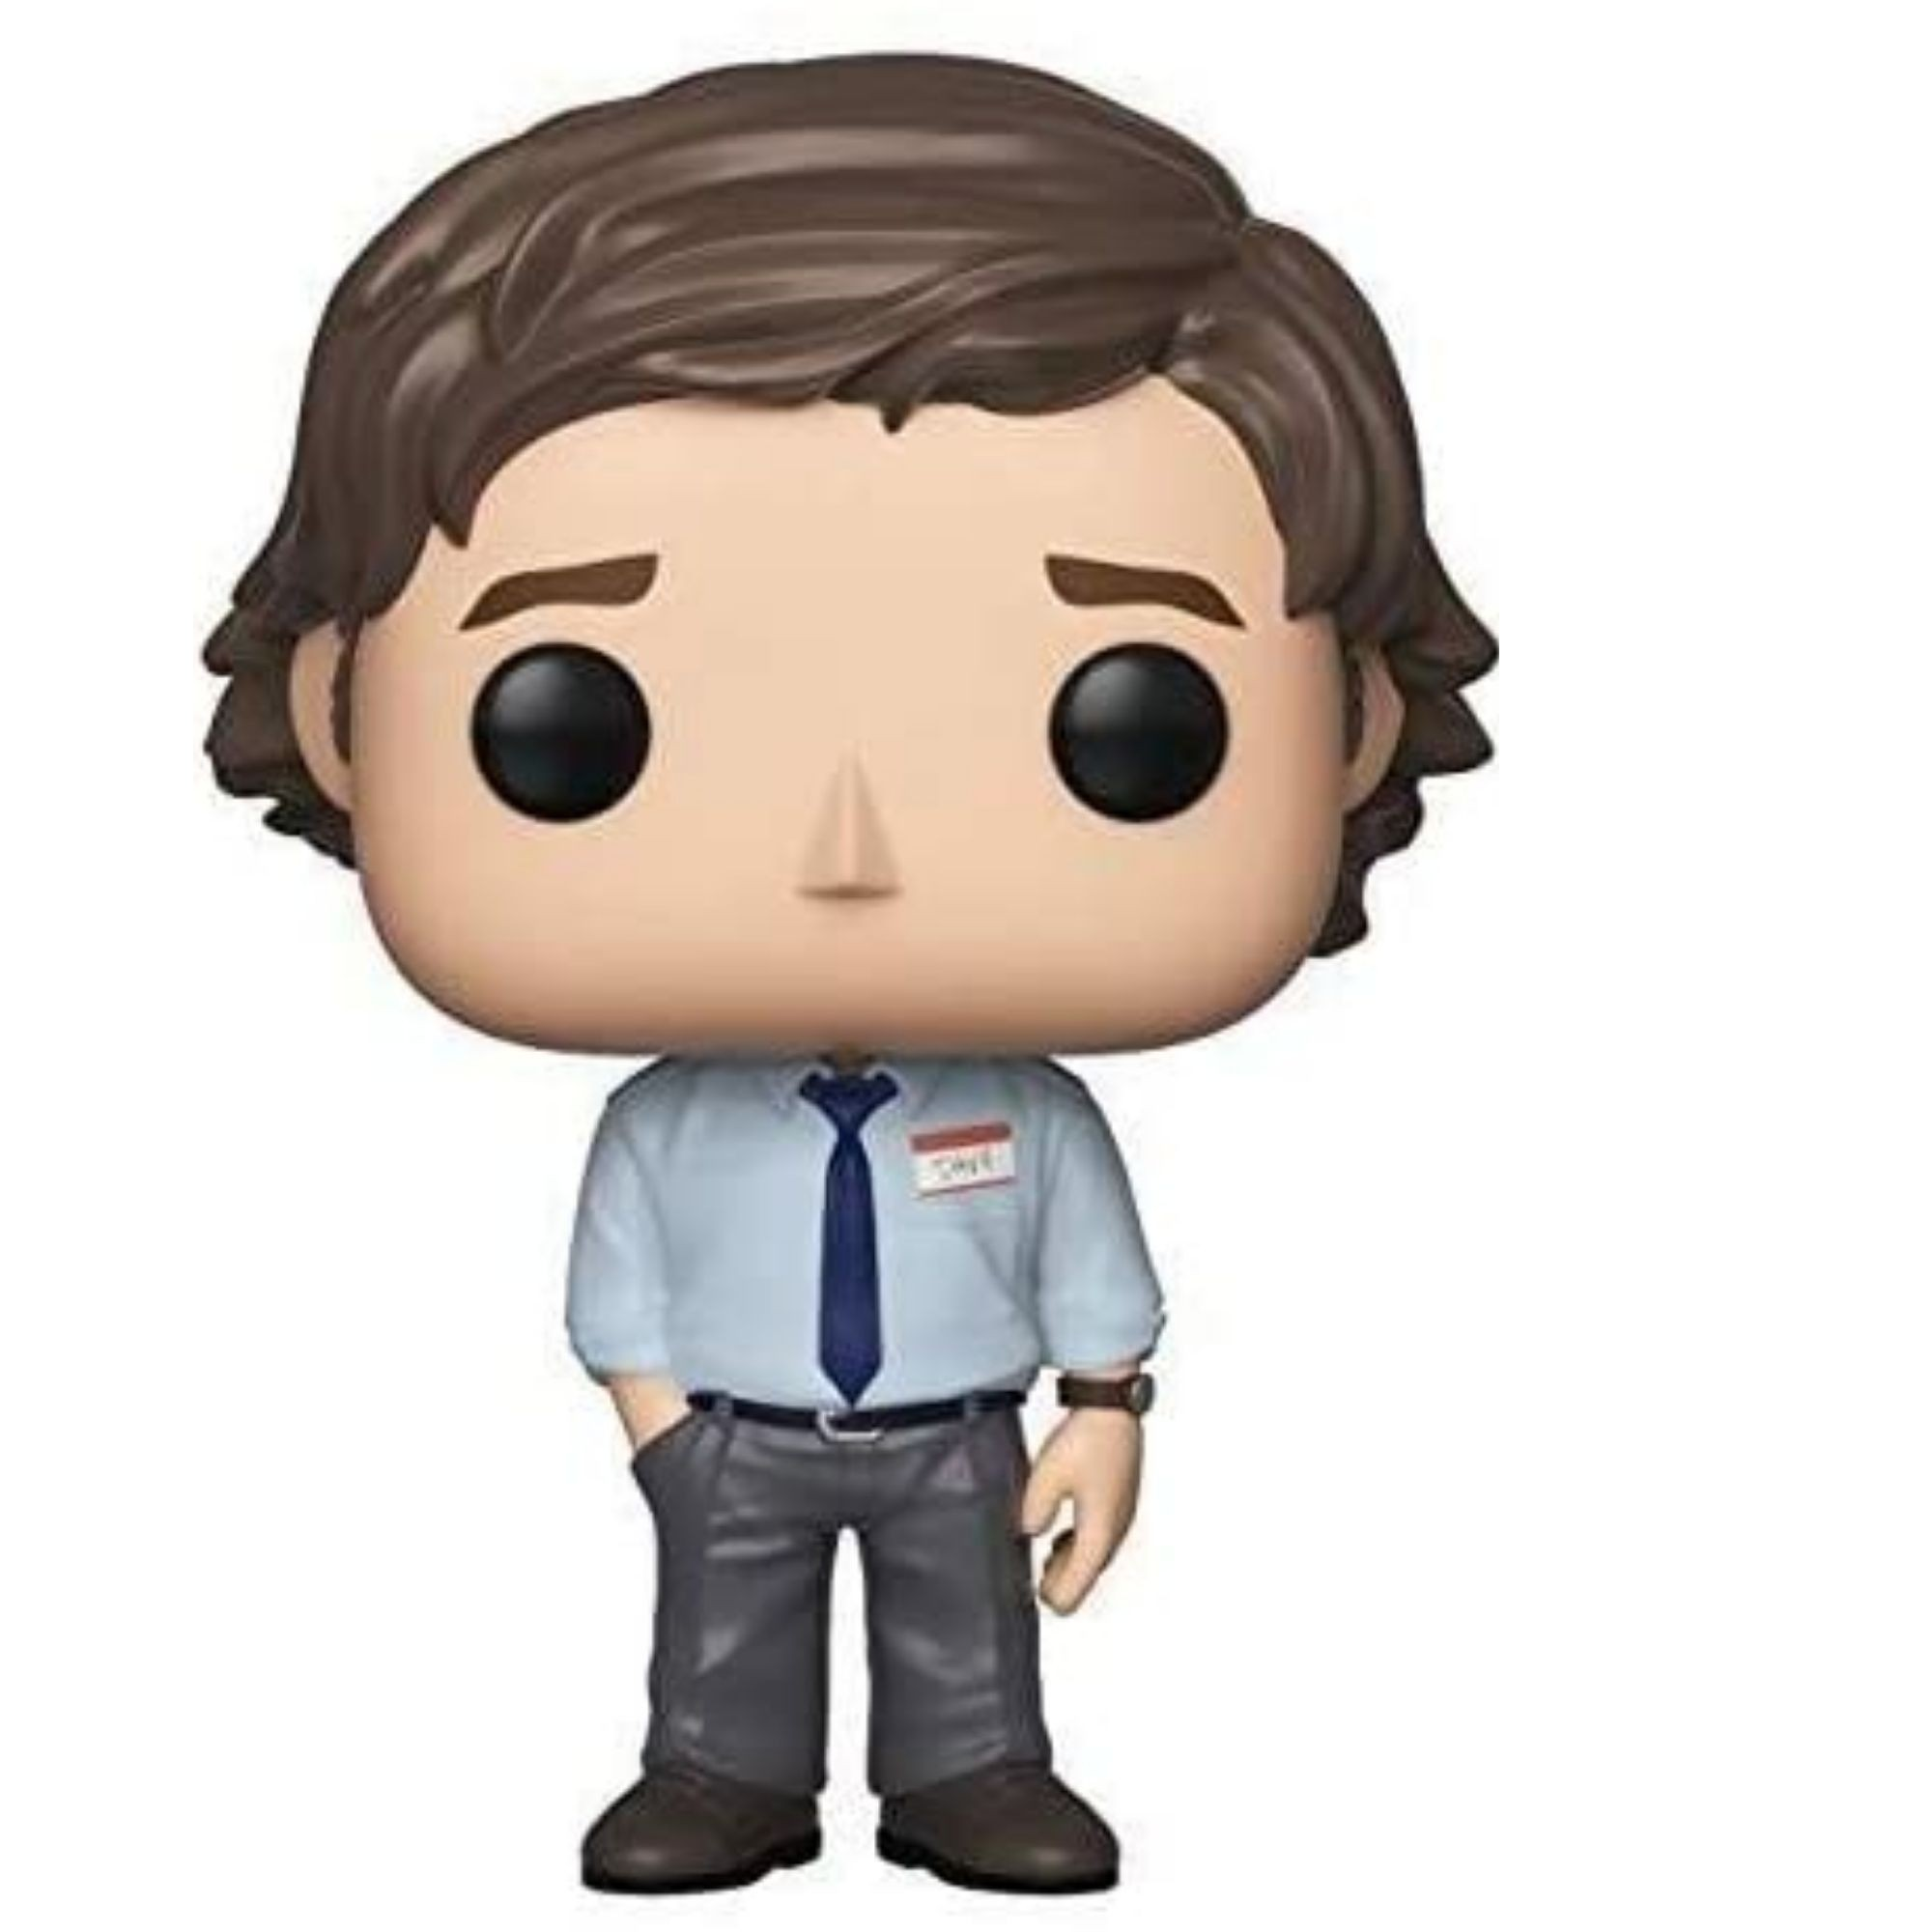 Funko Pop TV The Office Jim Halpert #870  - Game Land Brinquedos